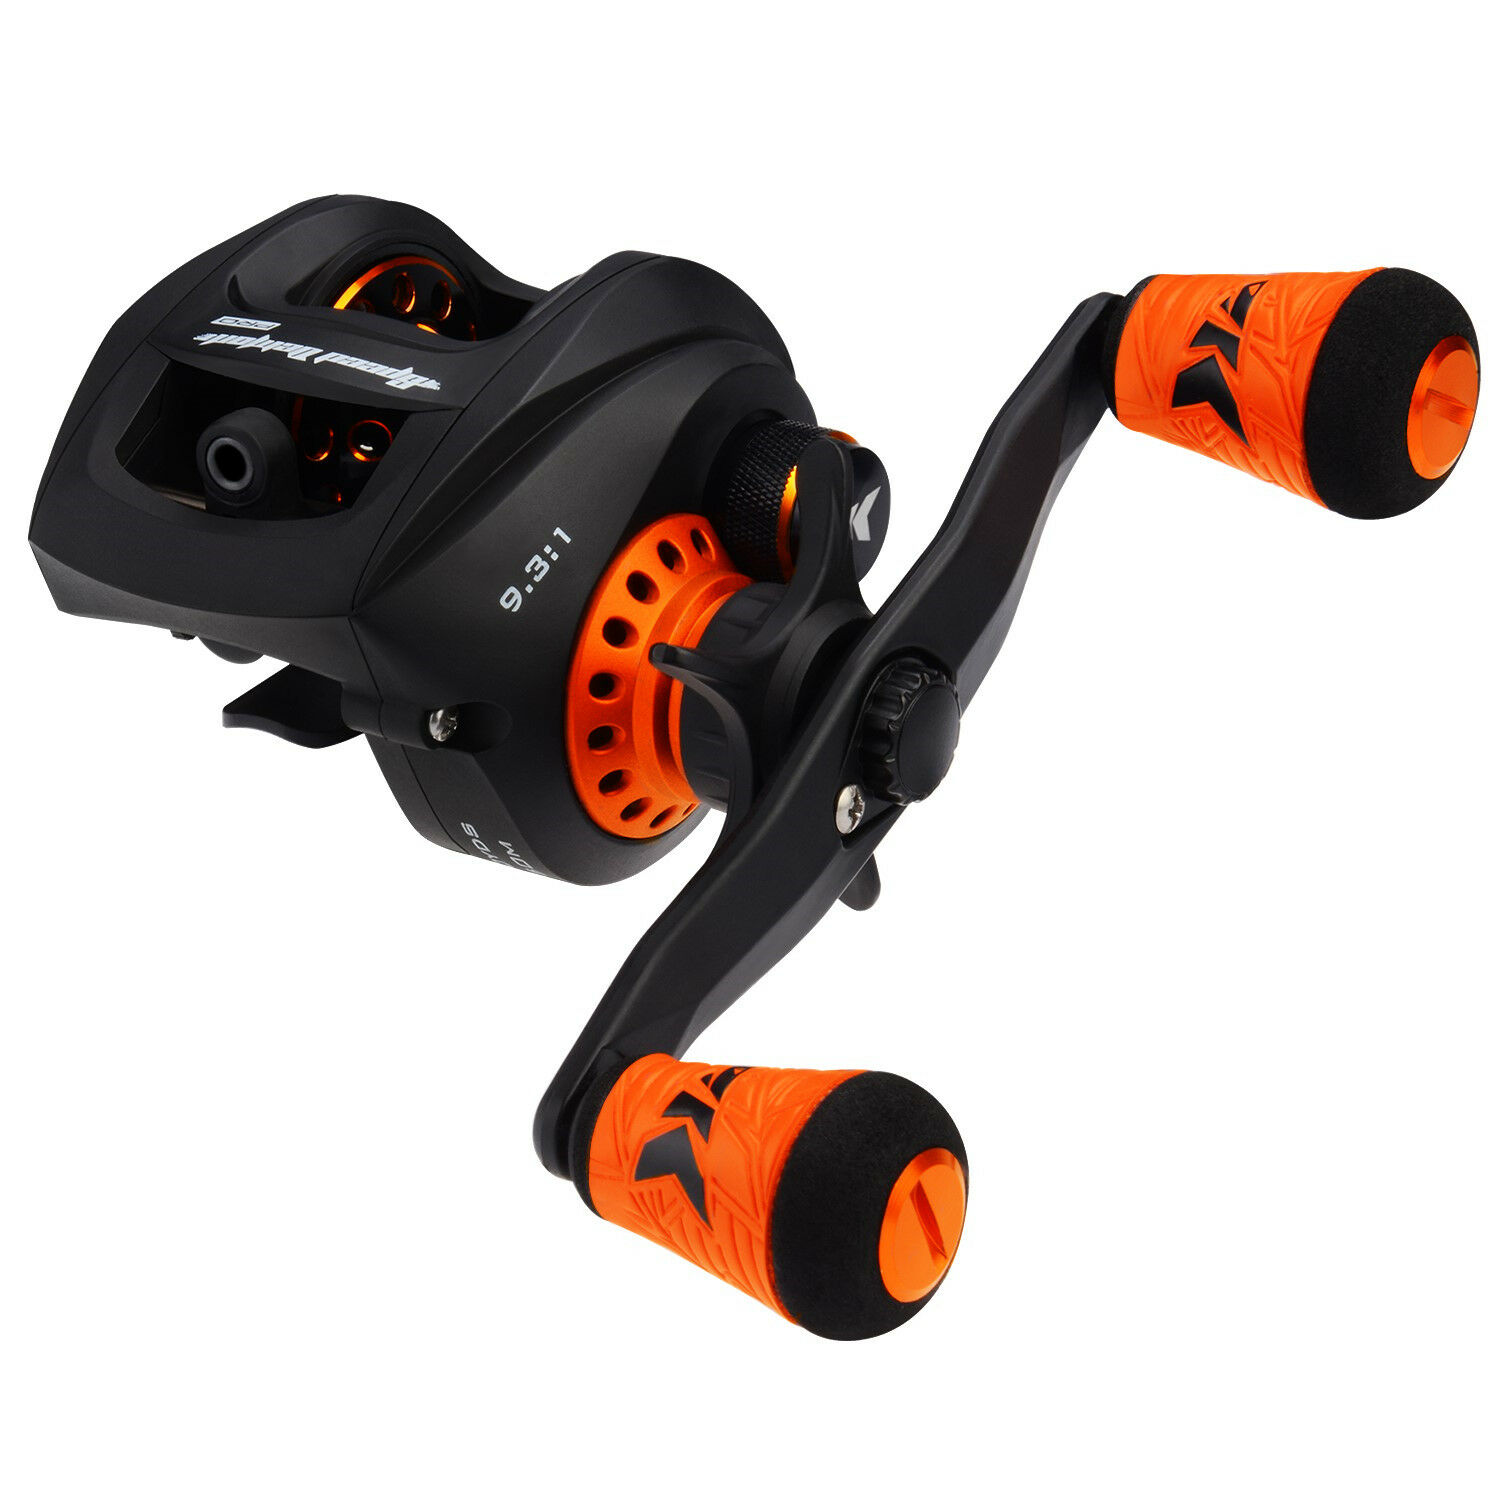 KastKing Speed Demon Pro Baitcasting Reels Carbon Body Reel -  Left-Handed  60% off